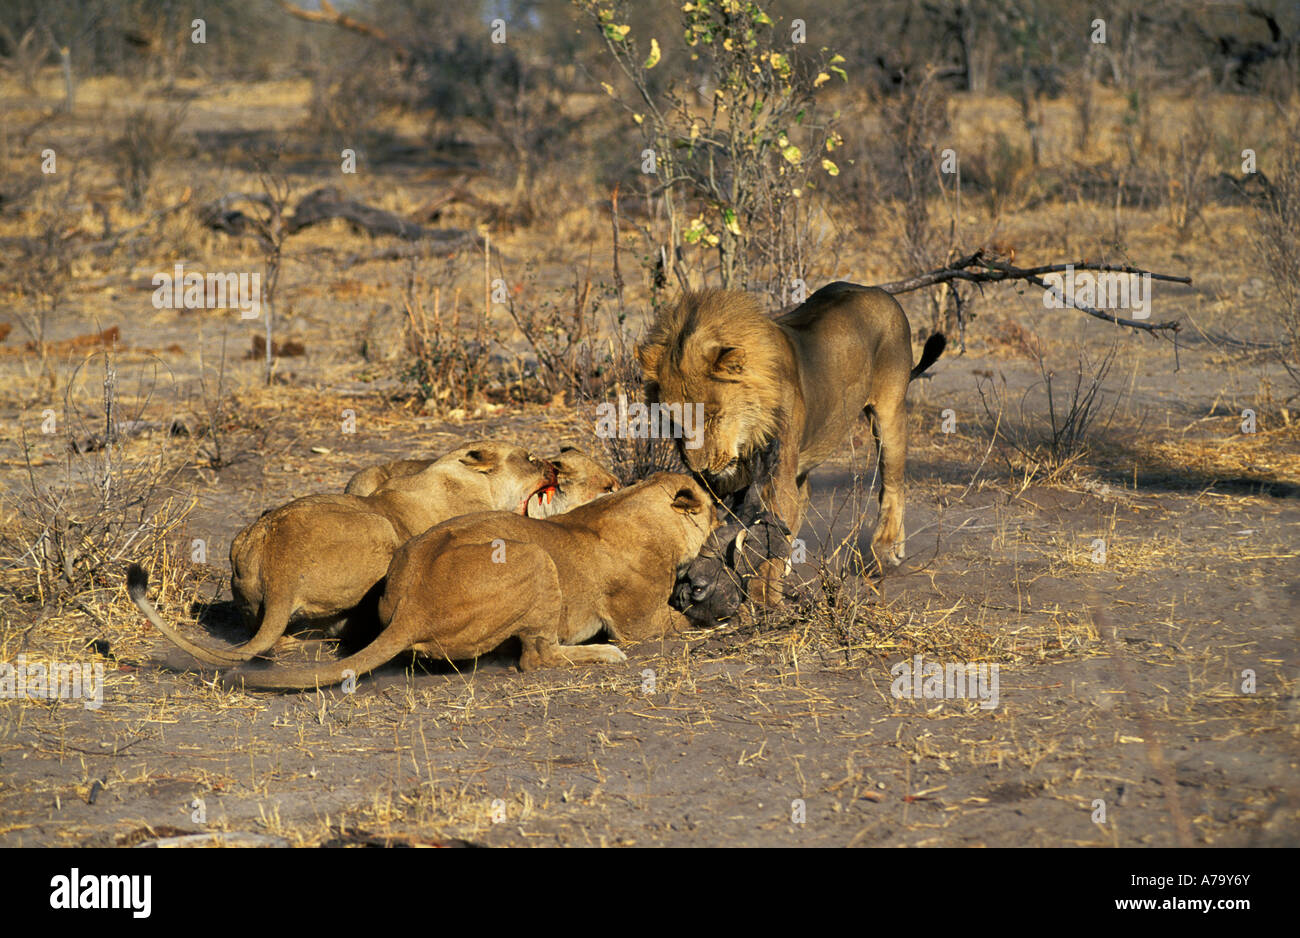 A lioness with bloodied teeth snarls at a male lion wanting to steal the warthog they have caught Duma Tau Botswana - Stock Image